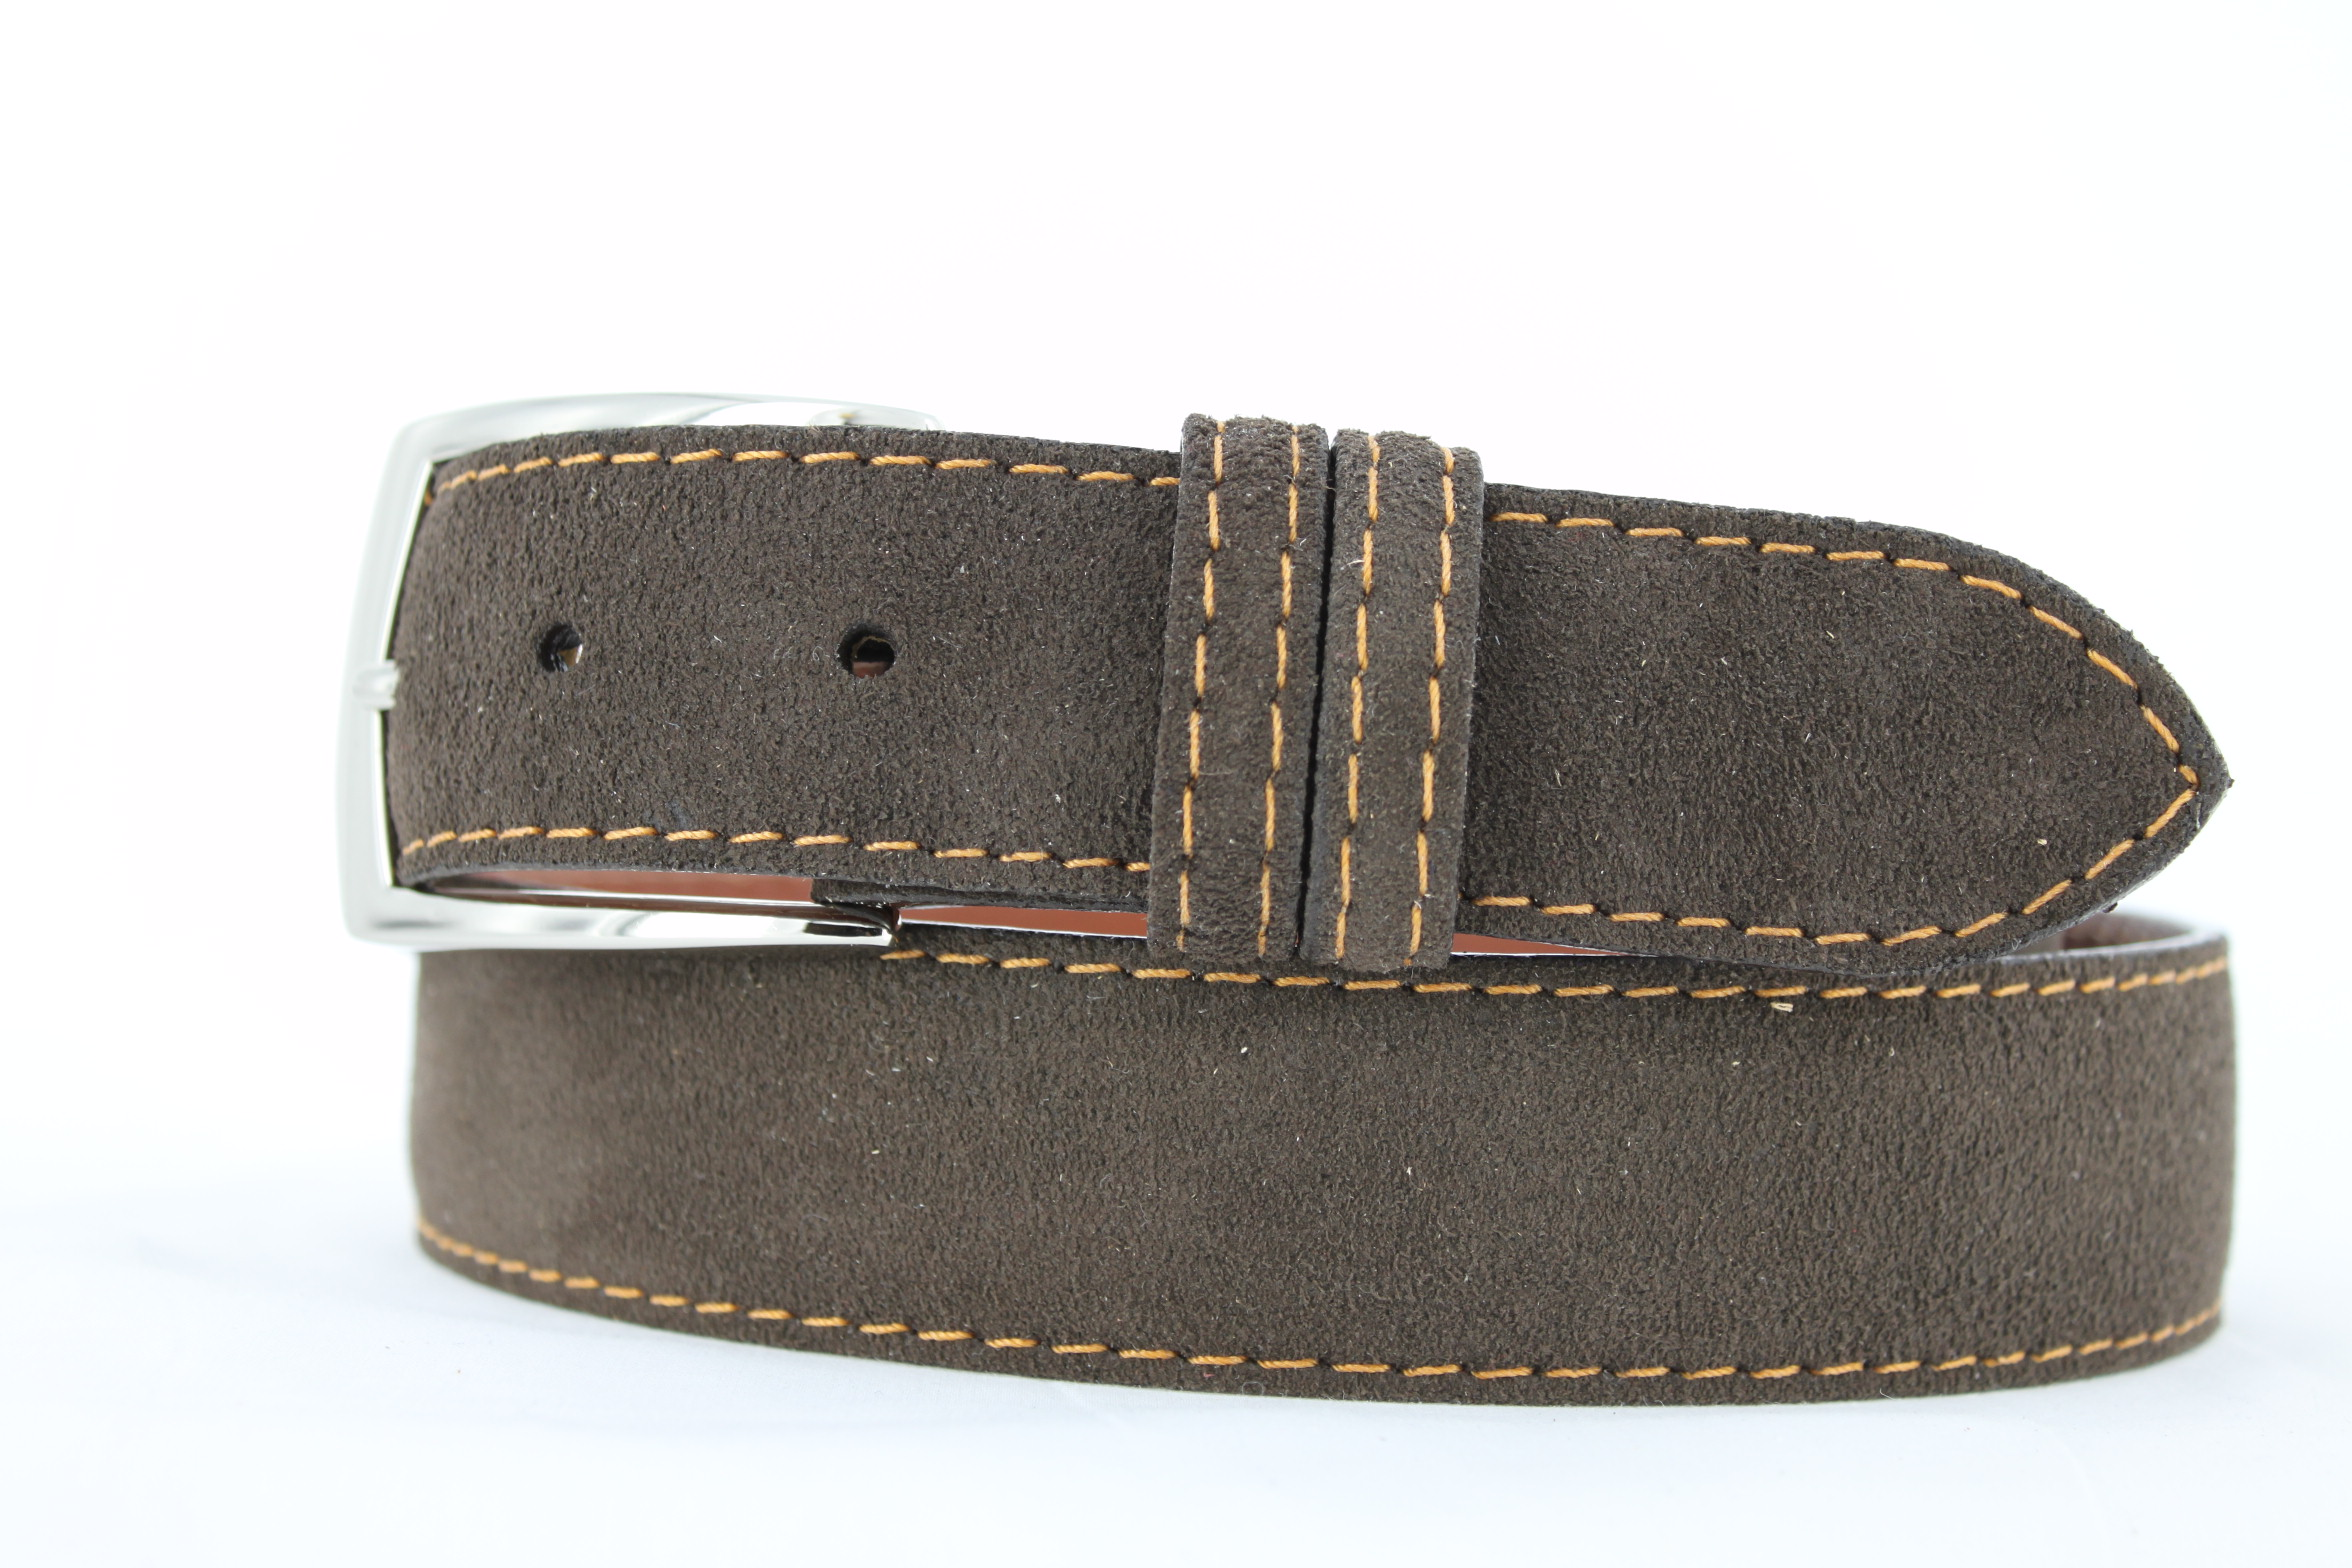 Handmade Genuine Suede Leather Belts | Patrick Gibbons Handmade